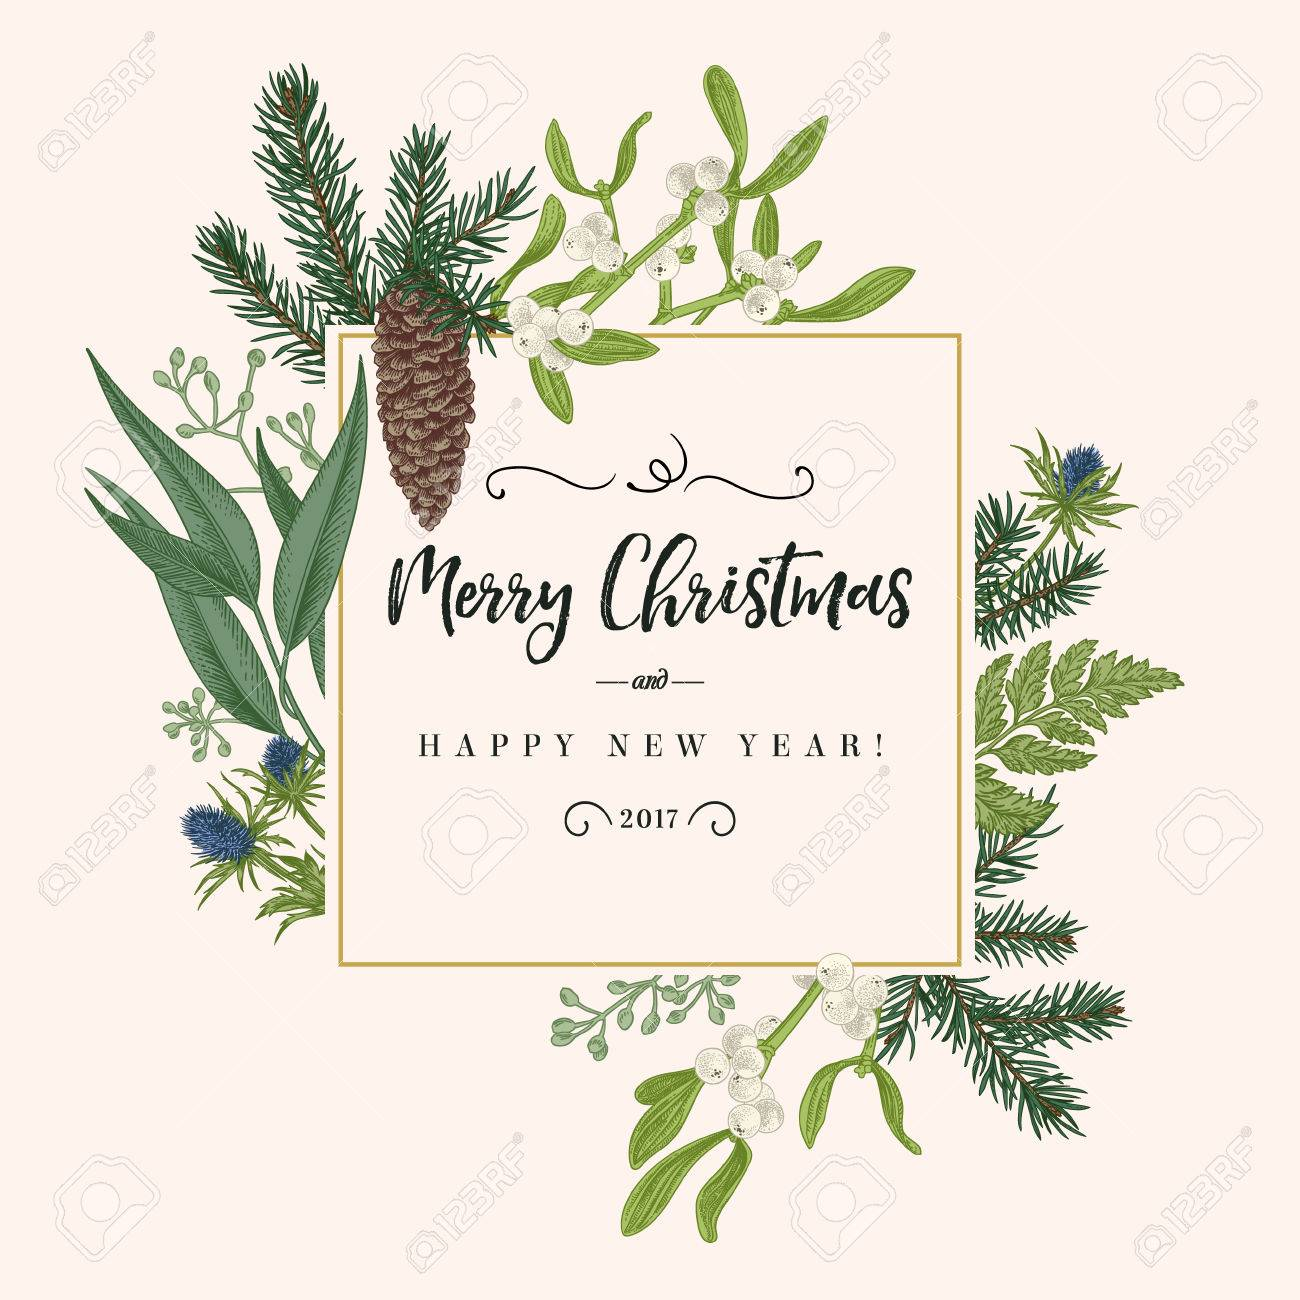 Christmas holiday frame in vintage style. Greeting invitation card. Botanical illustration with pine branches, pine cones, mistletoe, fern. - 69224572